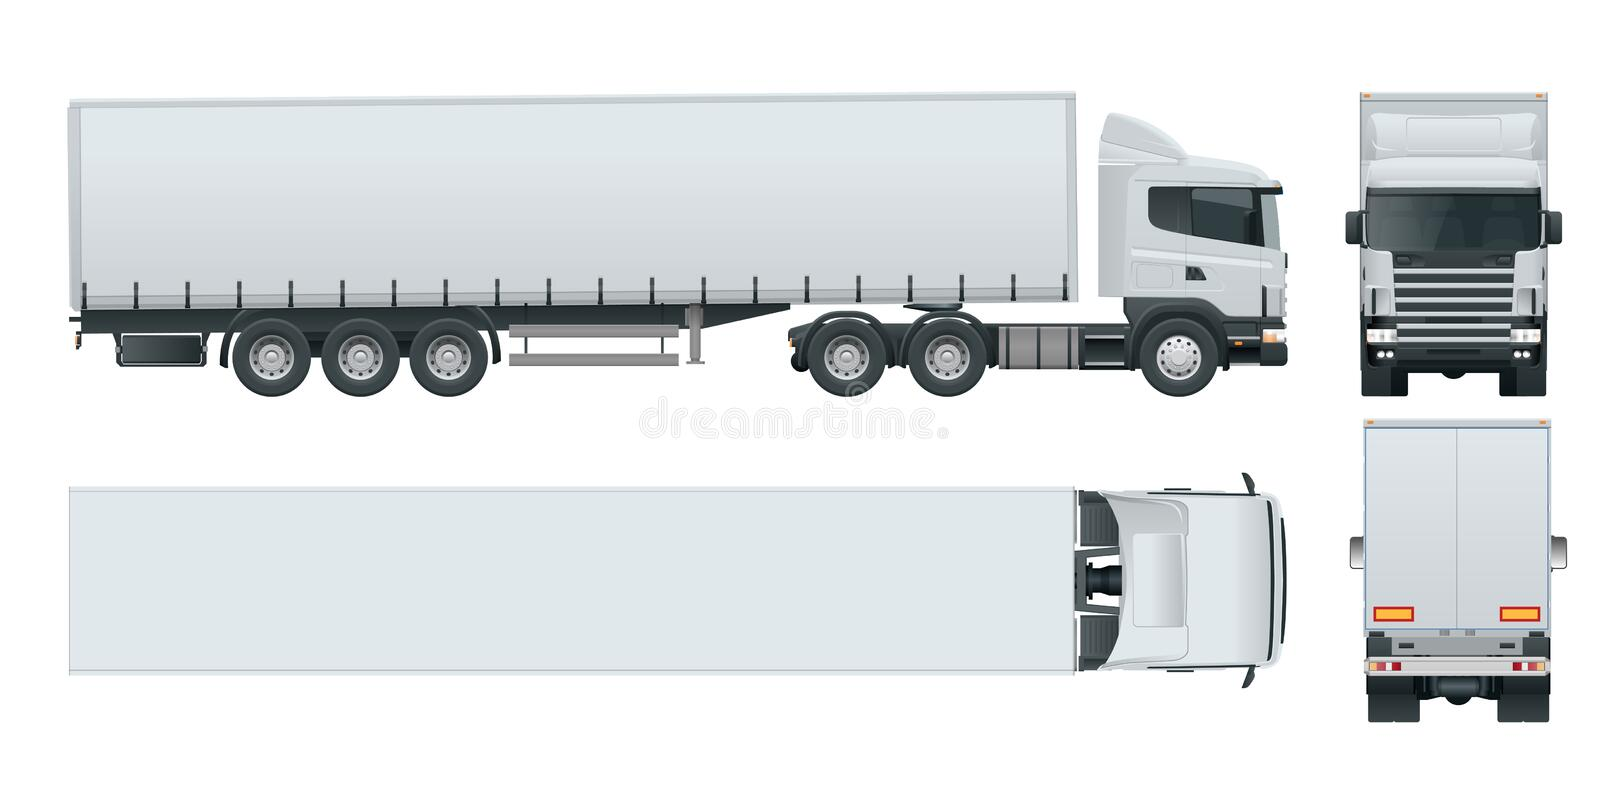 Truck trailer with container. Cargo delivering vehicle template vector isolated on white View front, rear, side, top royalty free illustration